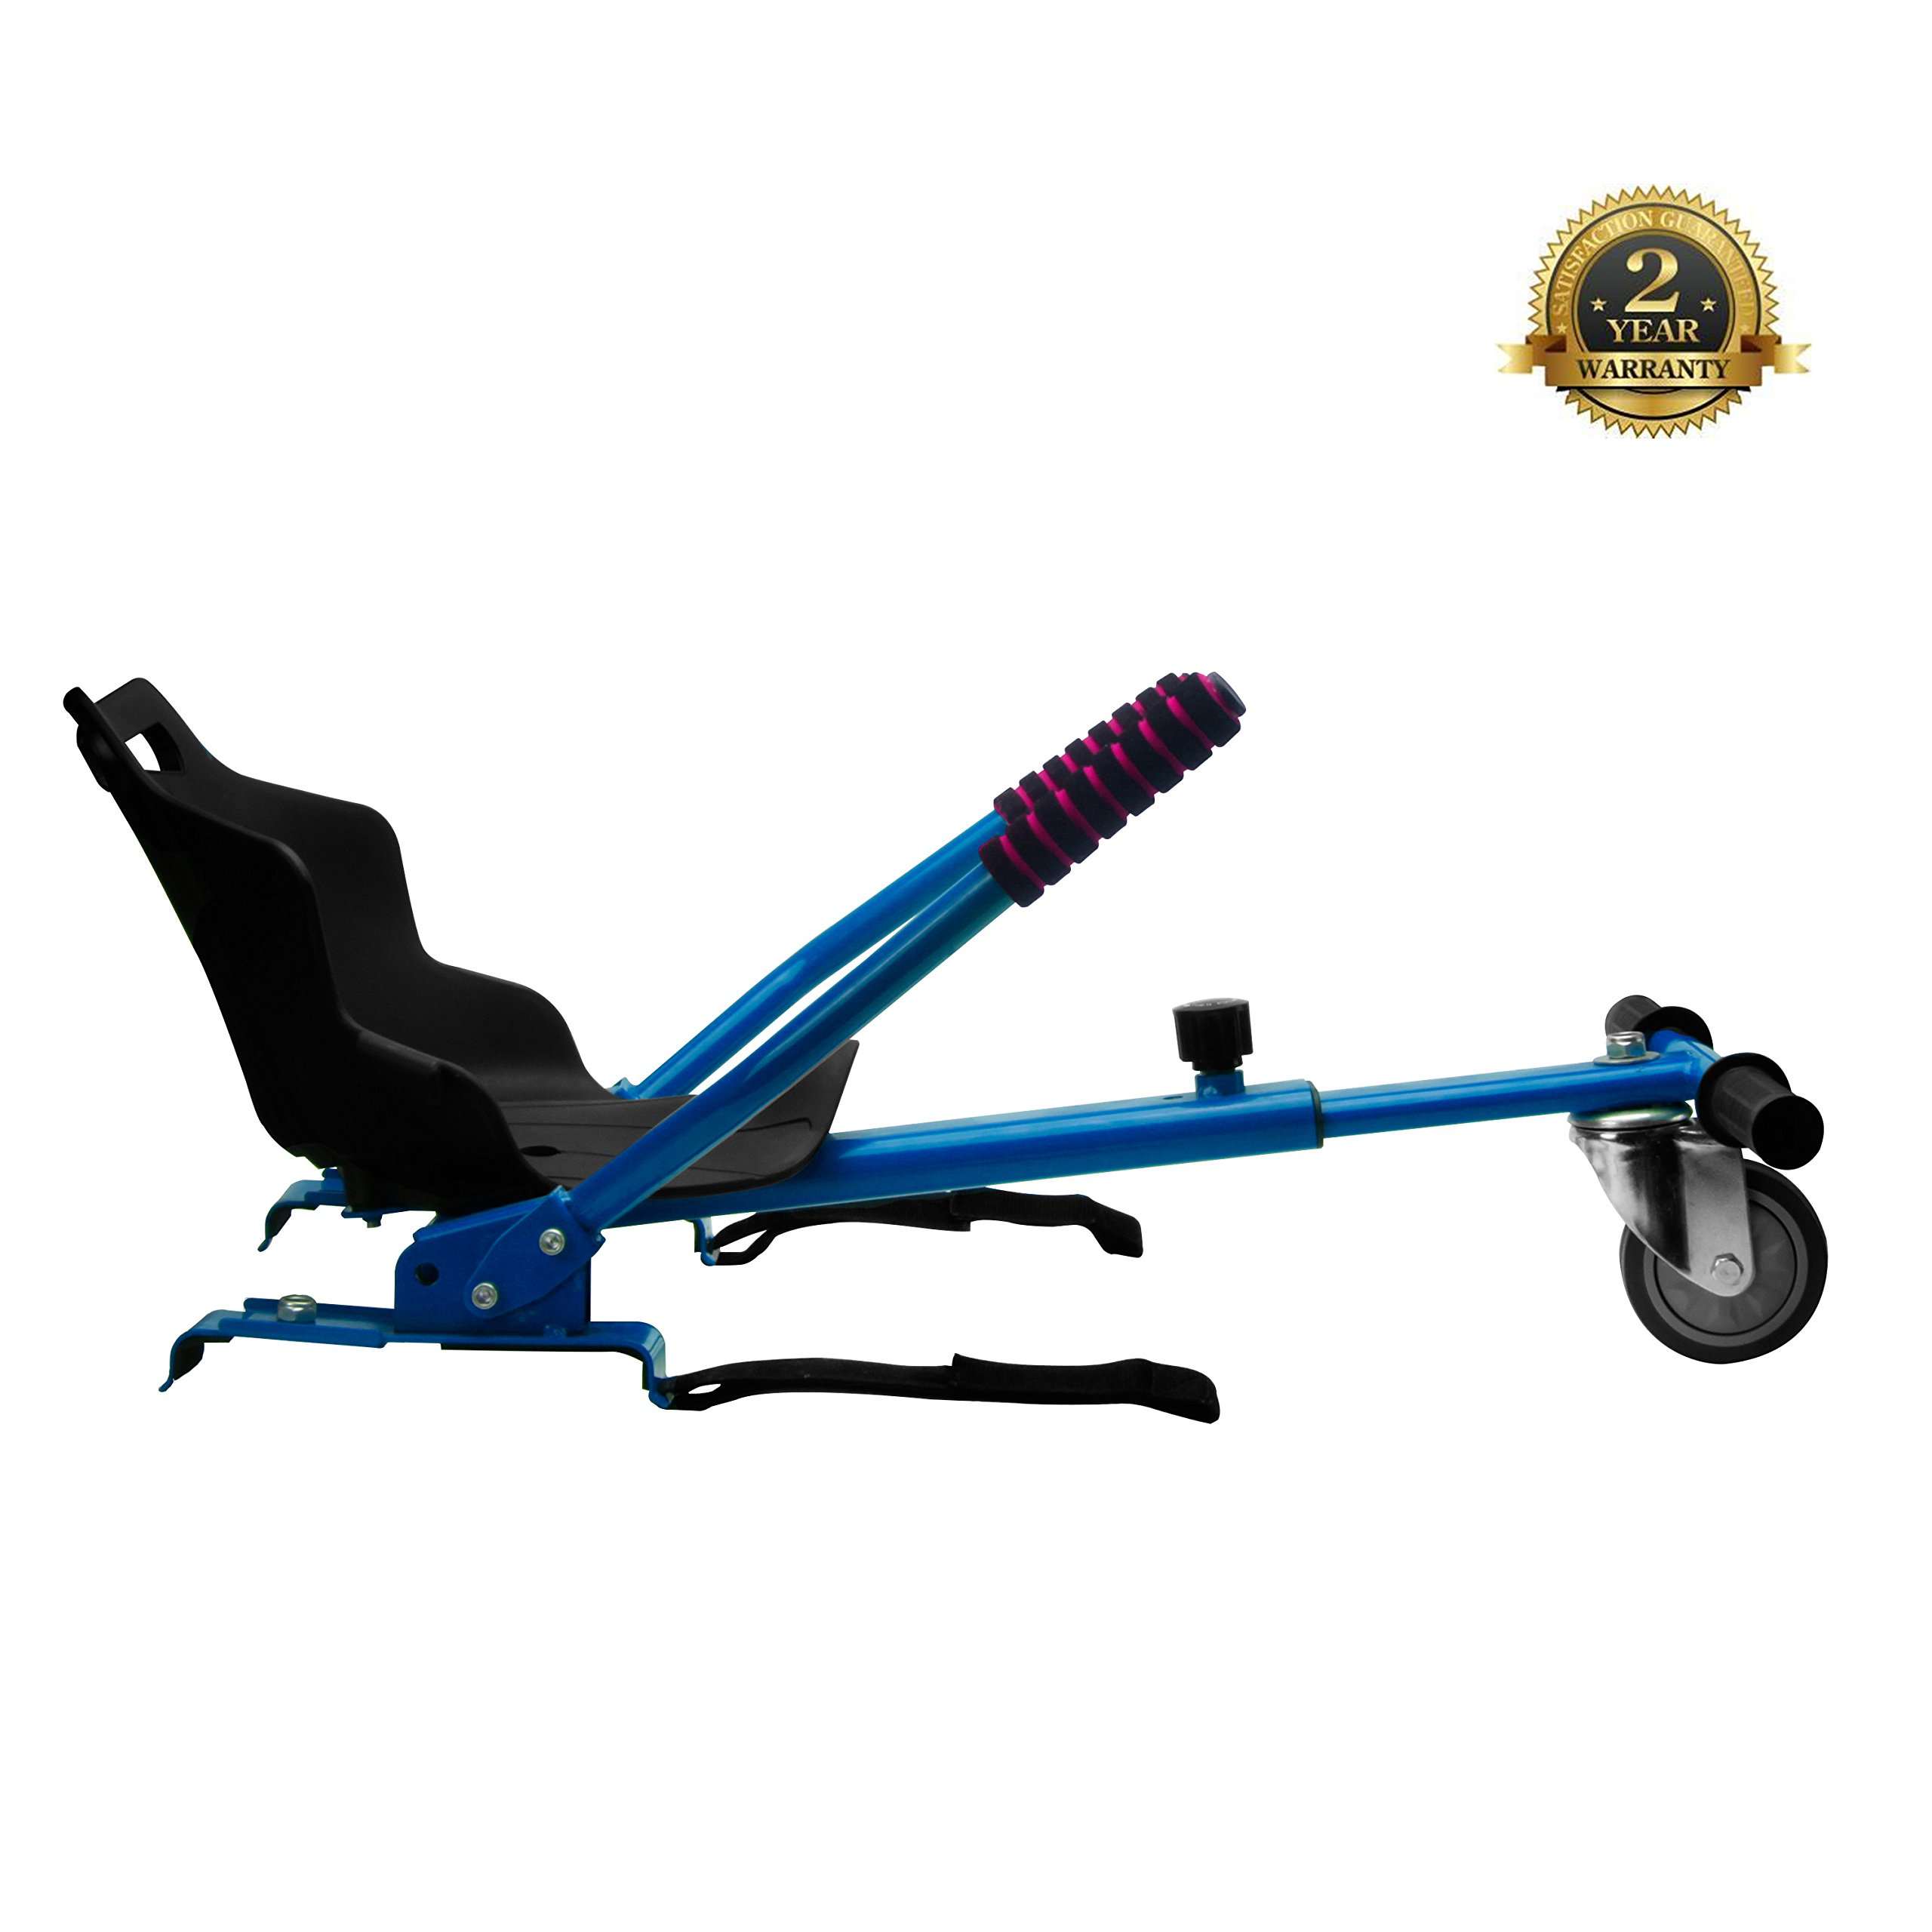 Go Kart for Hoverboards-Adjustable - All Heights - All Ages - Self Balancing Scooter - Compatible with All Hoverboards - HoverBoard not included (blue) by NONE-BRANDED